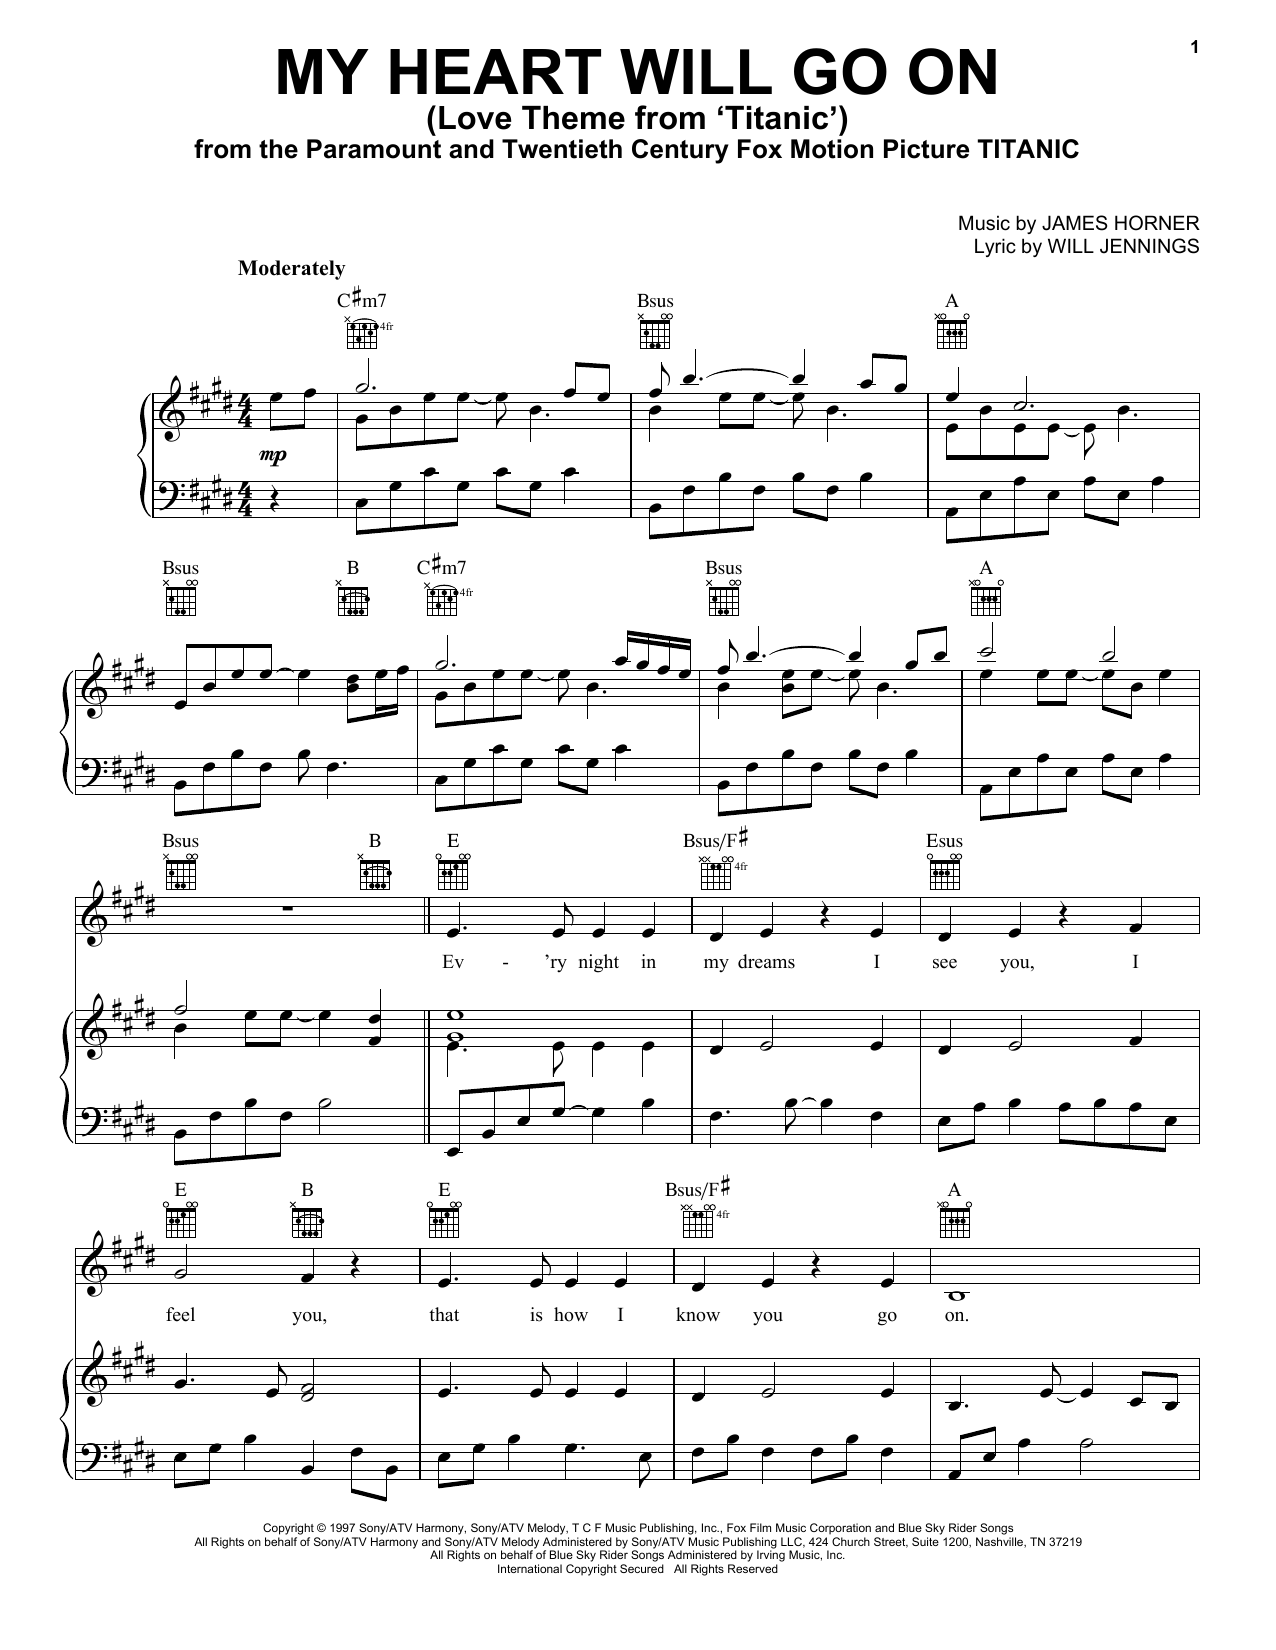 My Heart Will Go On (Love Theme from Titanic) sheet music by Celine Dion (Piano, Vocal u0026 Guitar ...